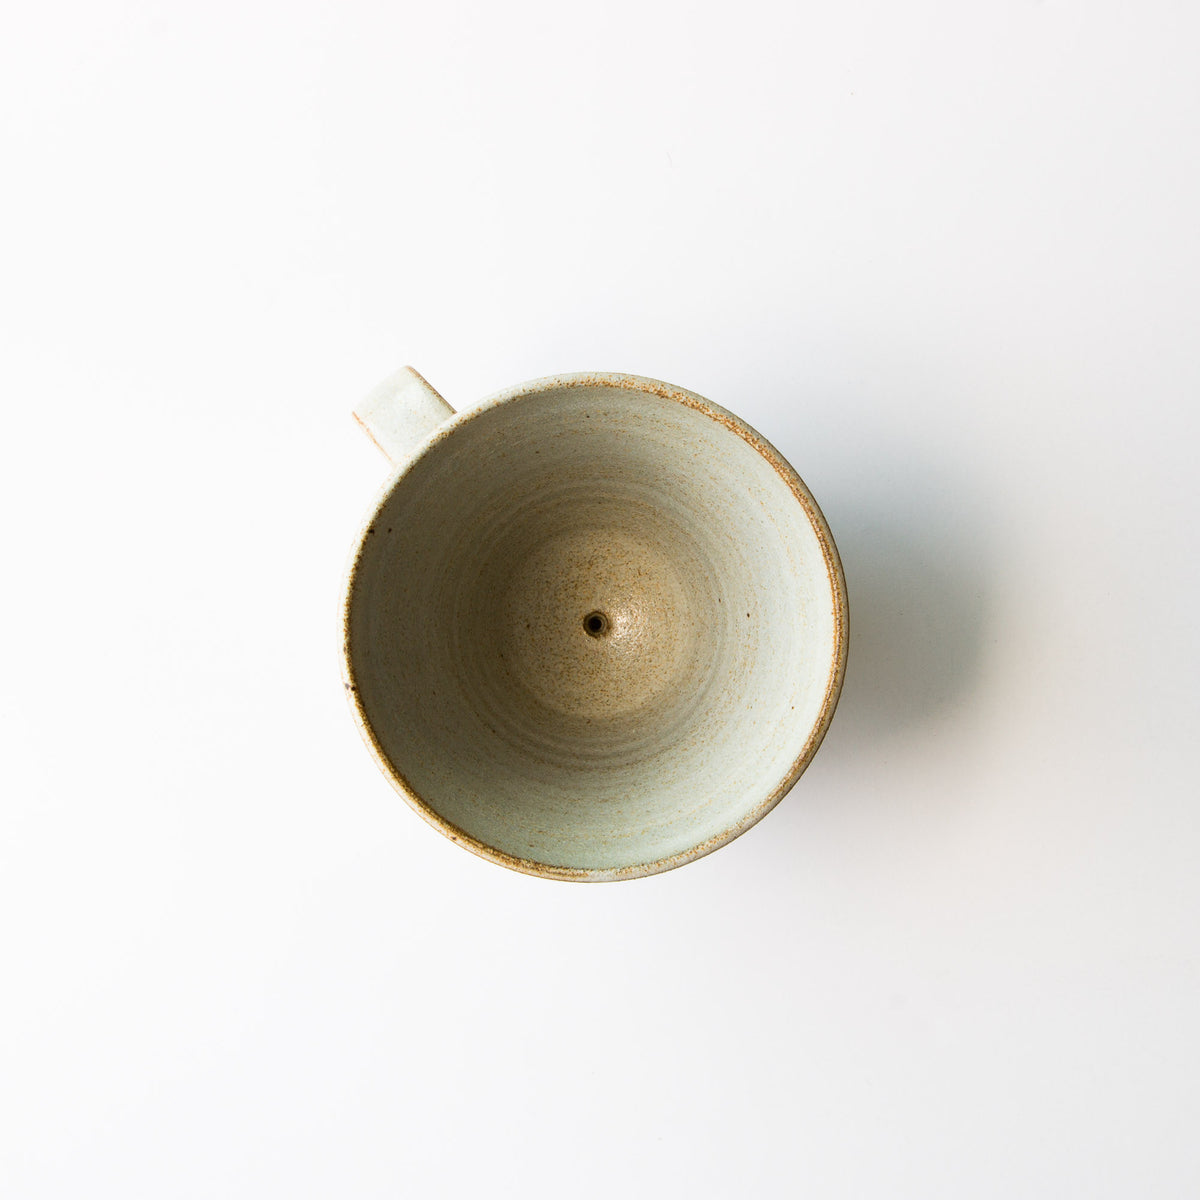 Top View - Greige Colour - Handmade Ceramic Pour-Over Coffee Dripper